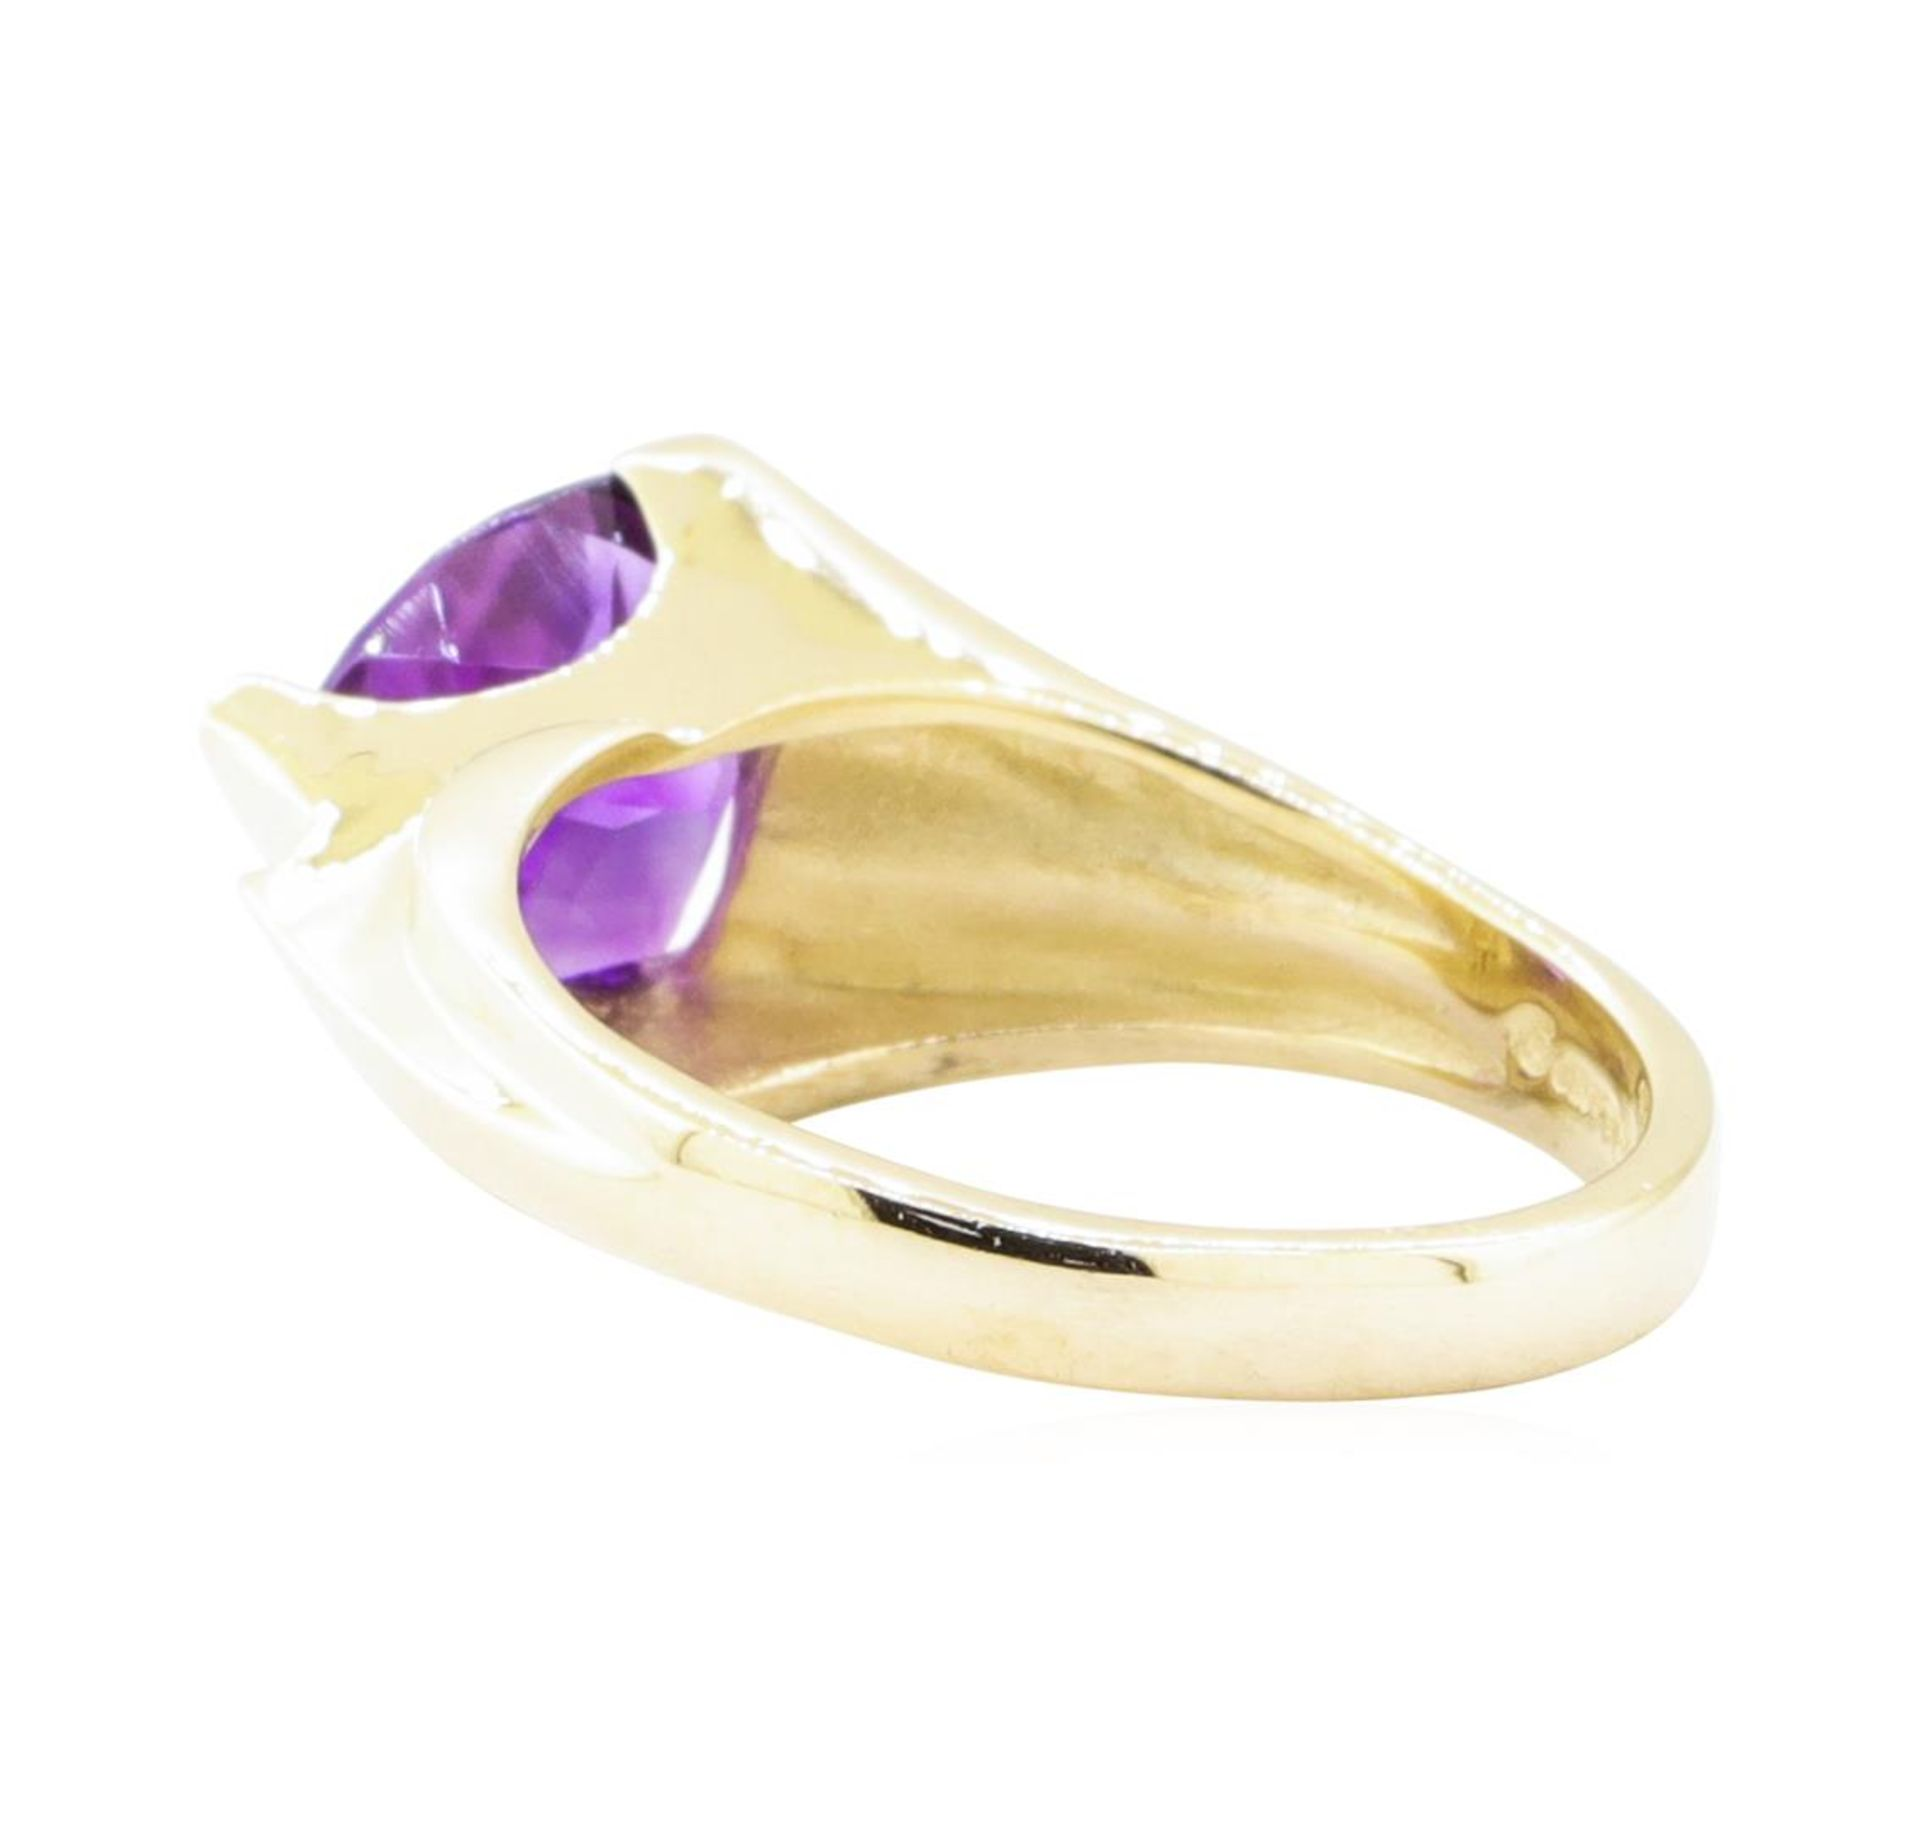 1.70 ctw Amethyst and Diamond Ring - 14KT Yellow Gold - Image 3 of 4